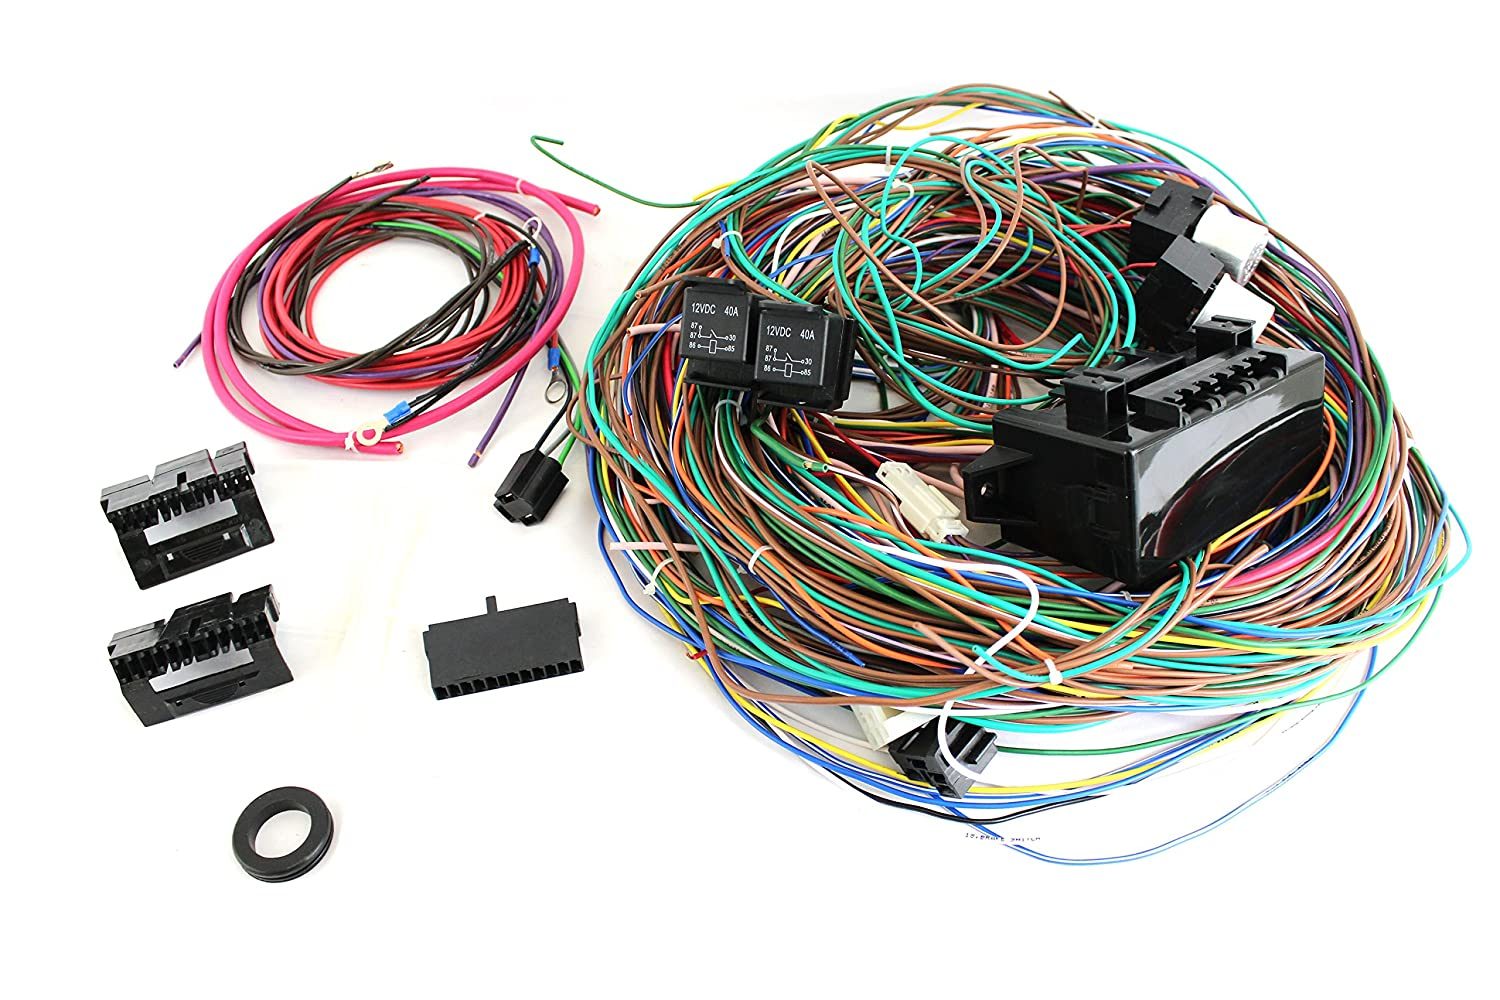 91YoamXFx2L._SL1500_ amazon com 12v 24 circuit 15 fuse street hot rat rod wiring 8 circuit wiring harness at bayanpartner.co